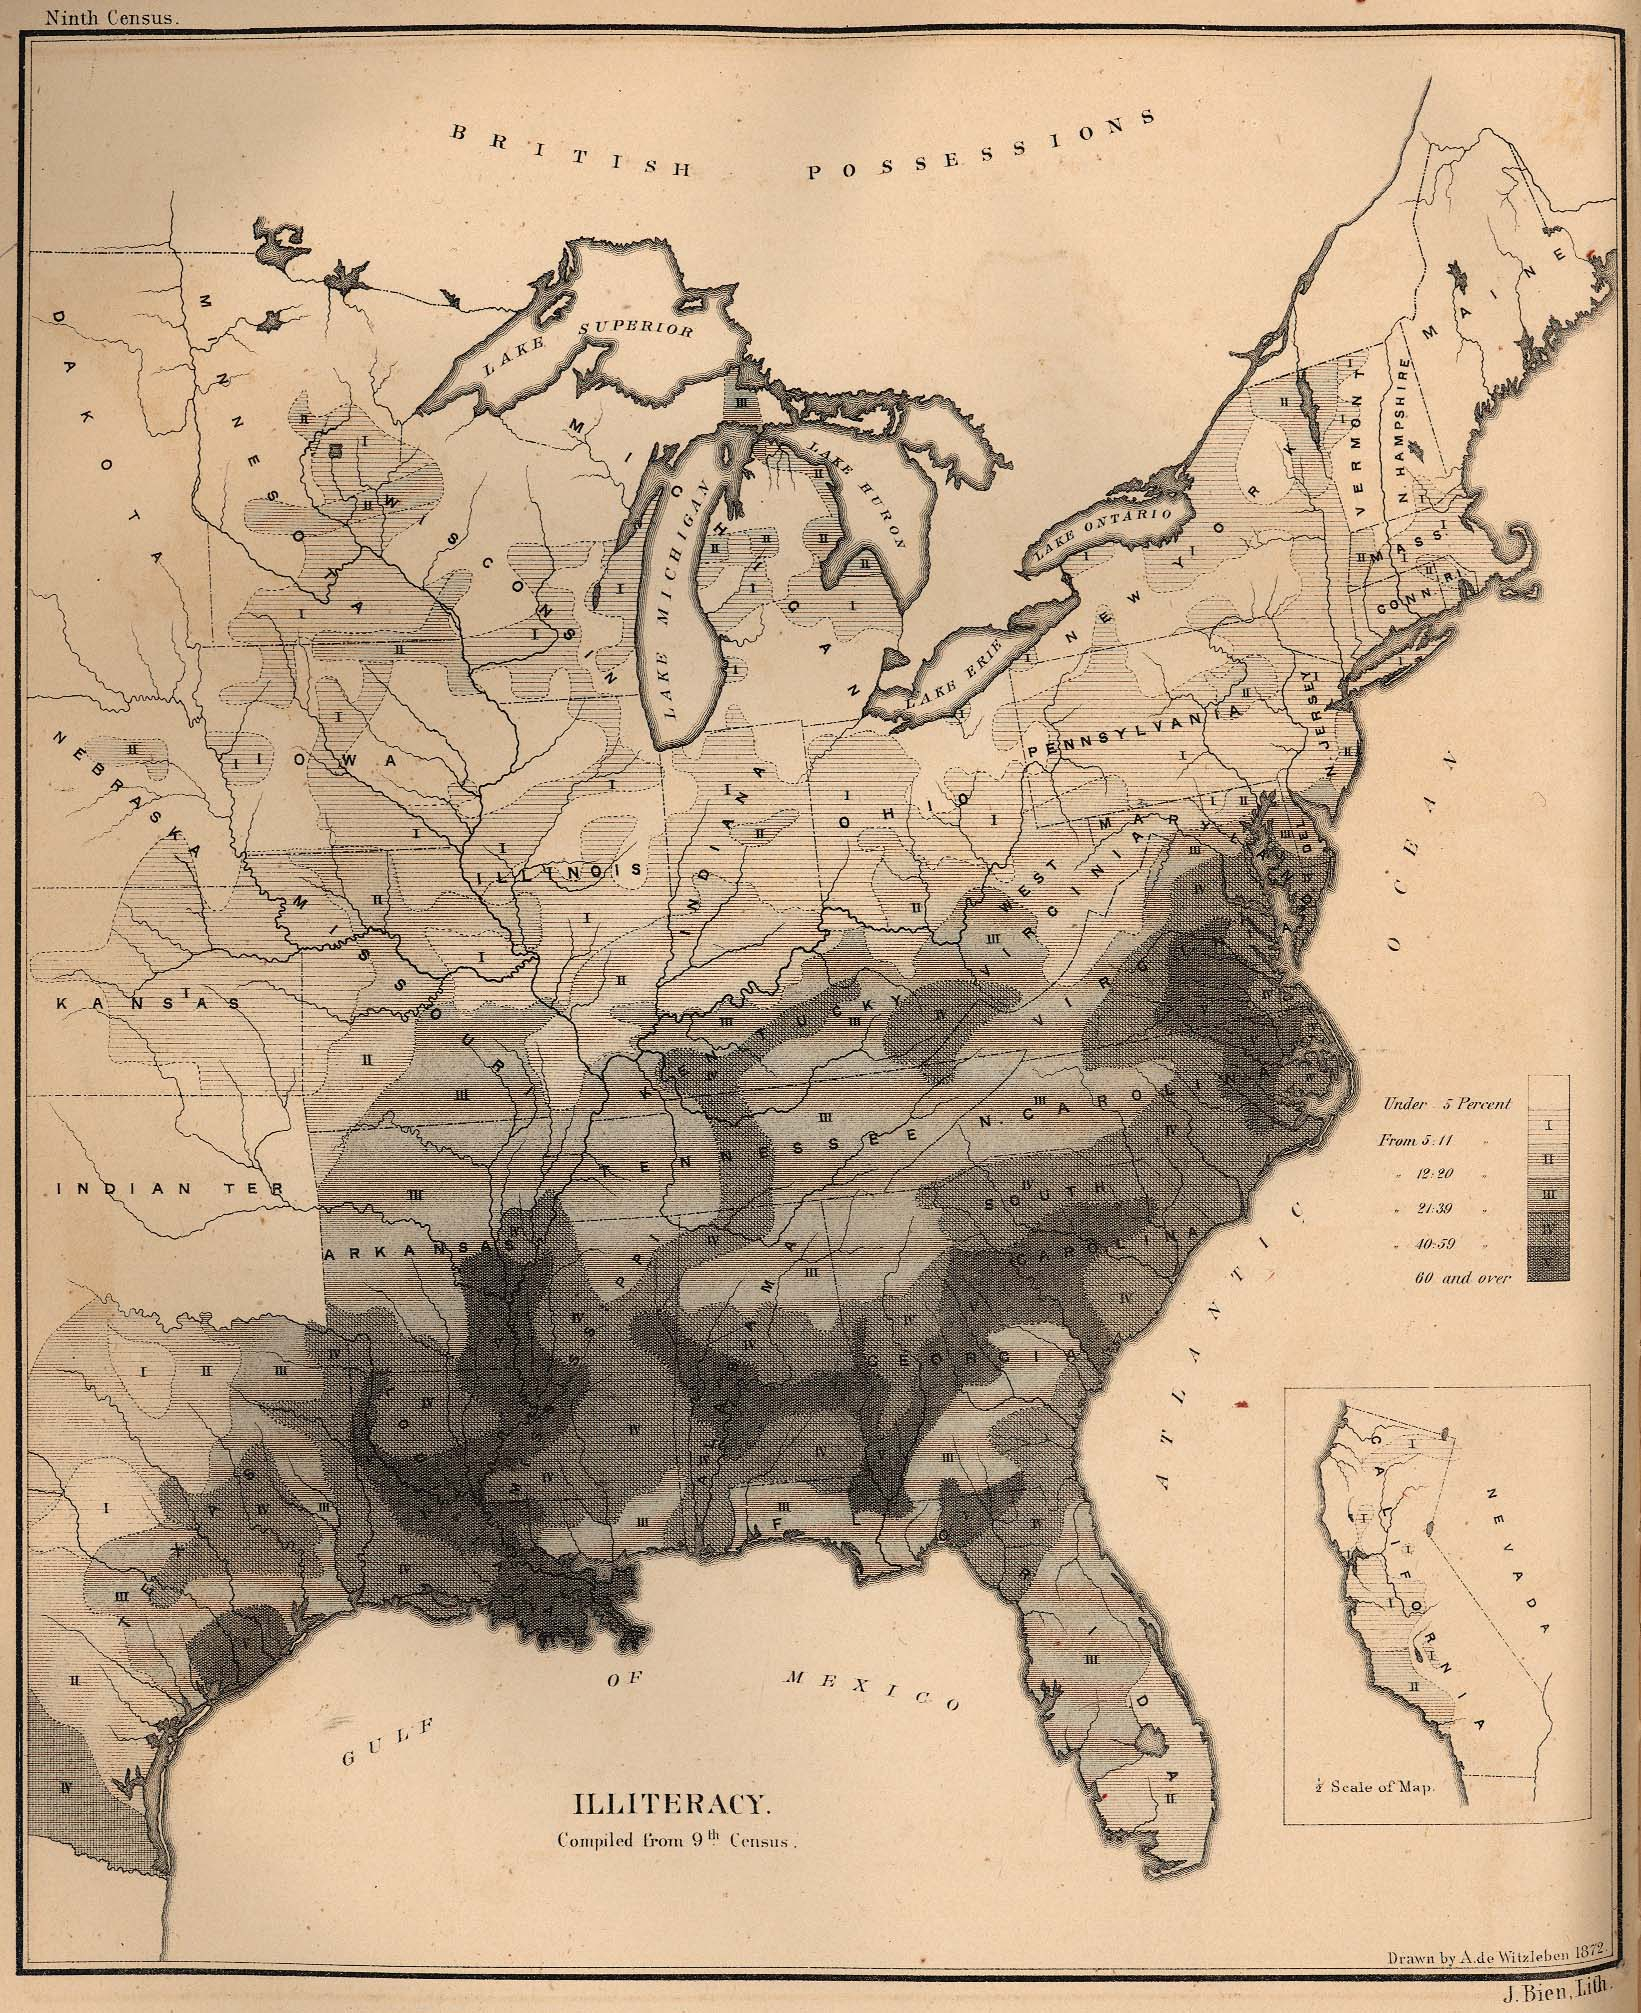 illiteracy in the united states 1872